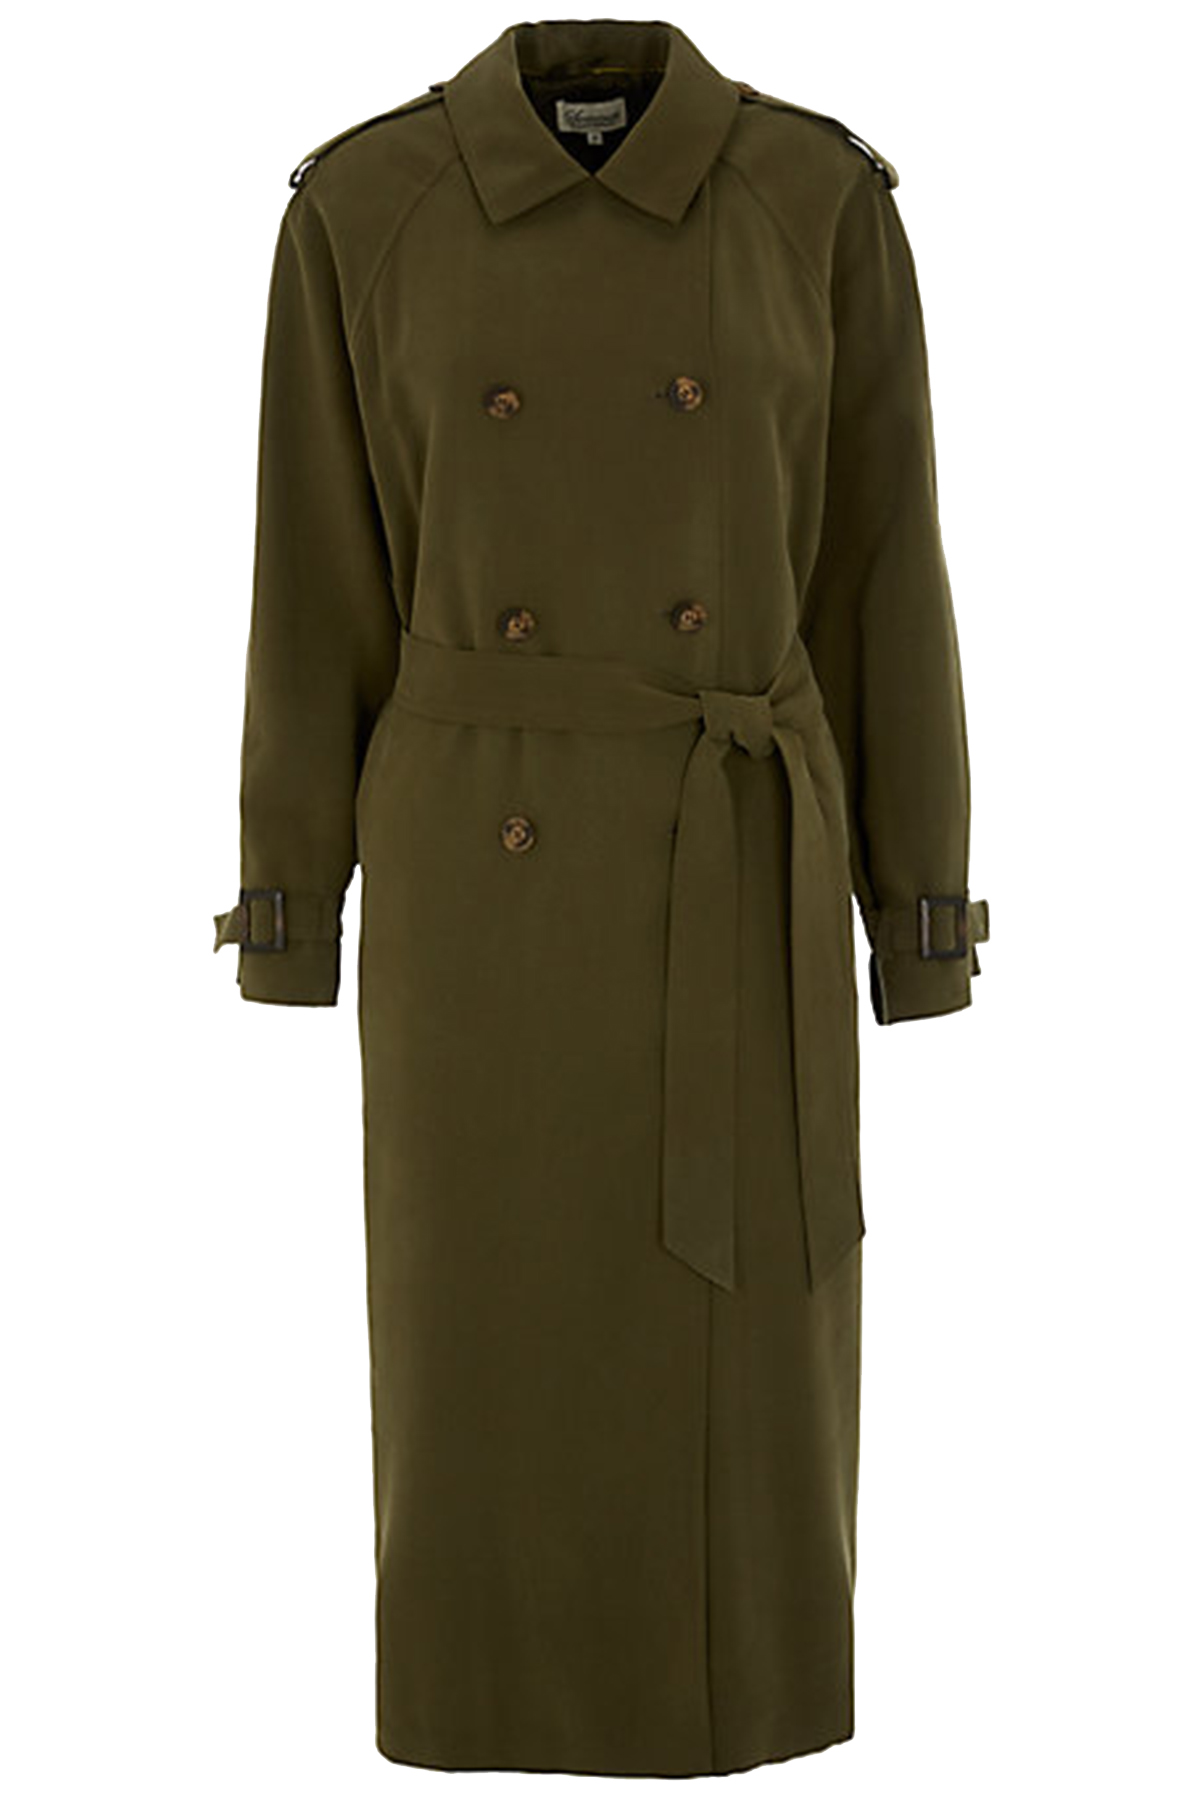 Somerset By Alice Temperley Khaki Cotton Double Breasted